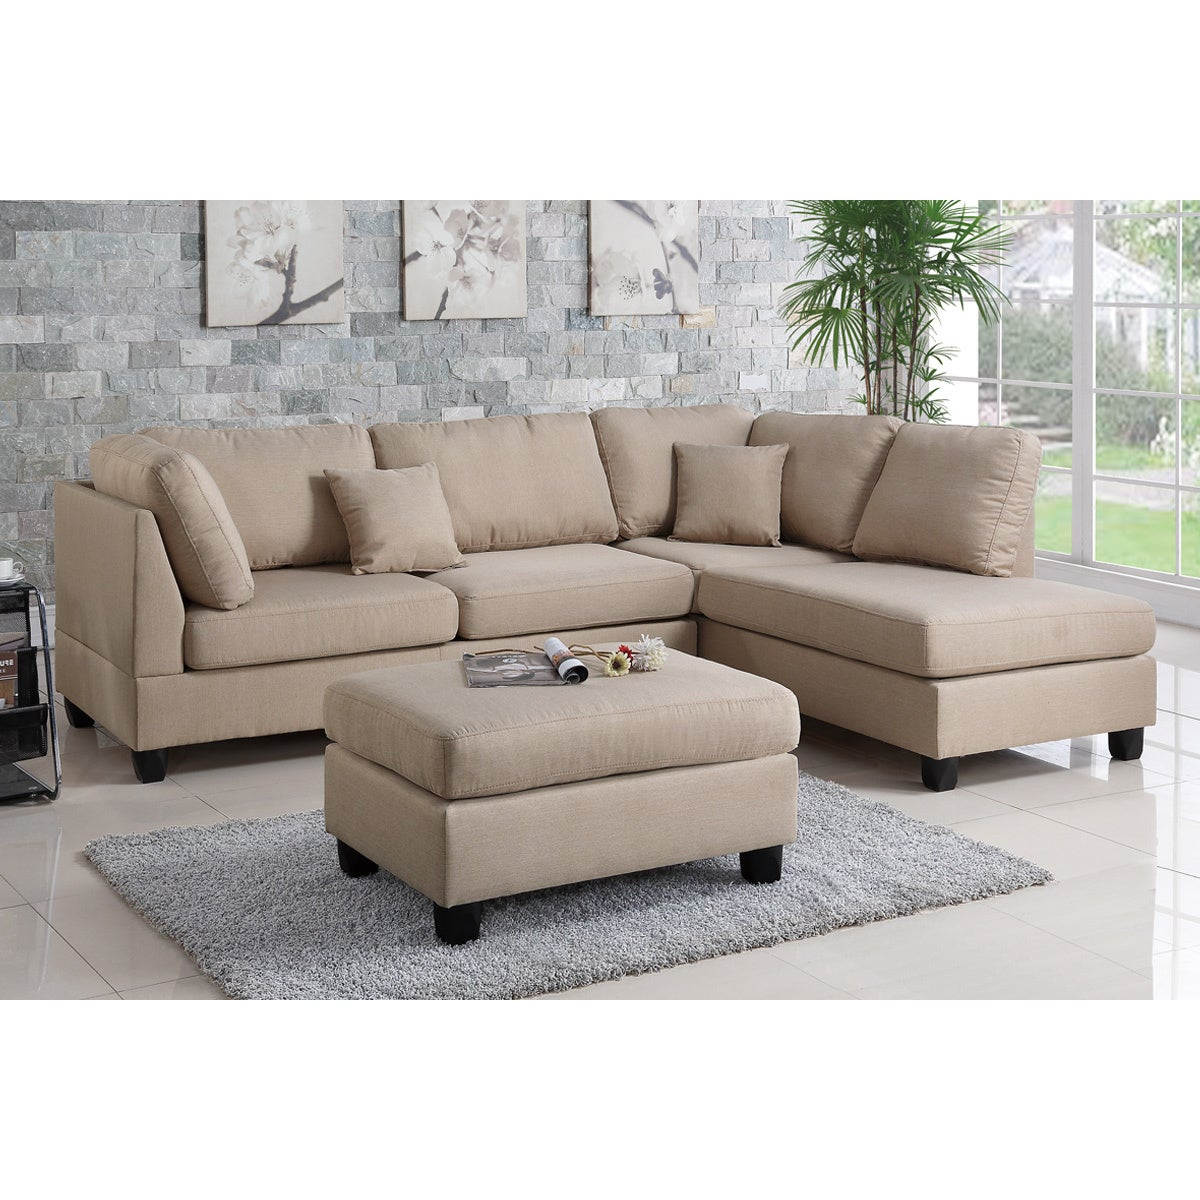 Shop bobkona dervon linen like left or right hand chaise sectional set with ottoman free shipping today overstock com 15267485